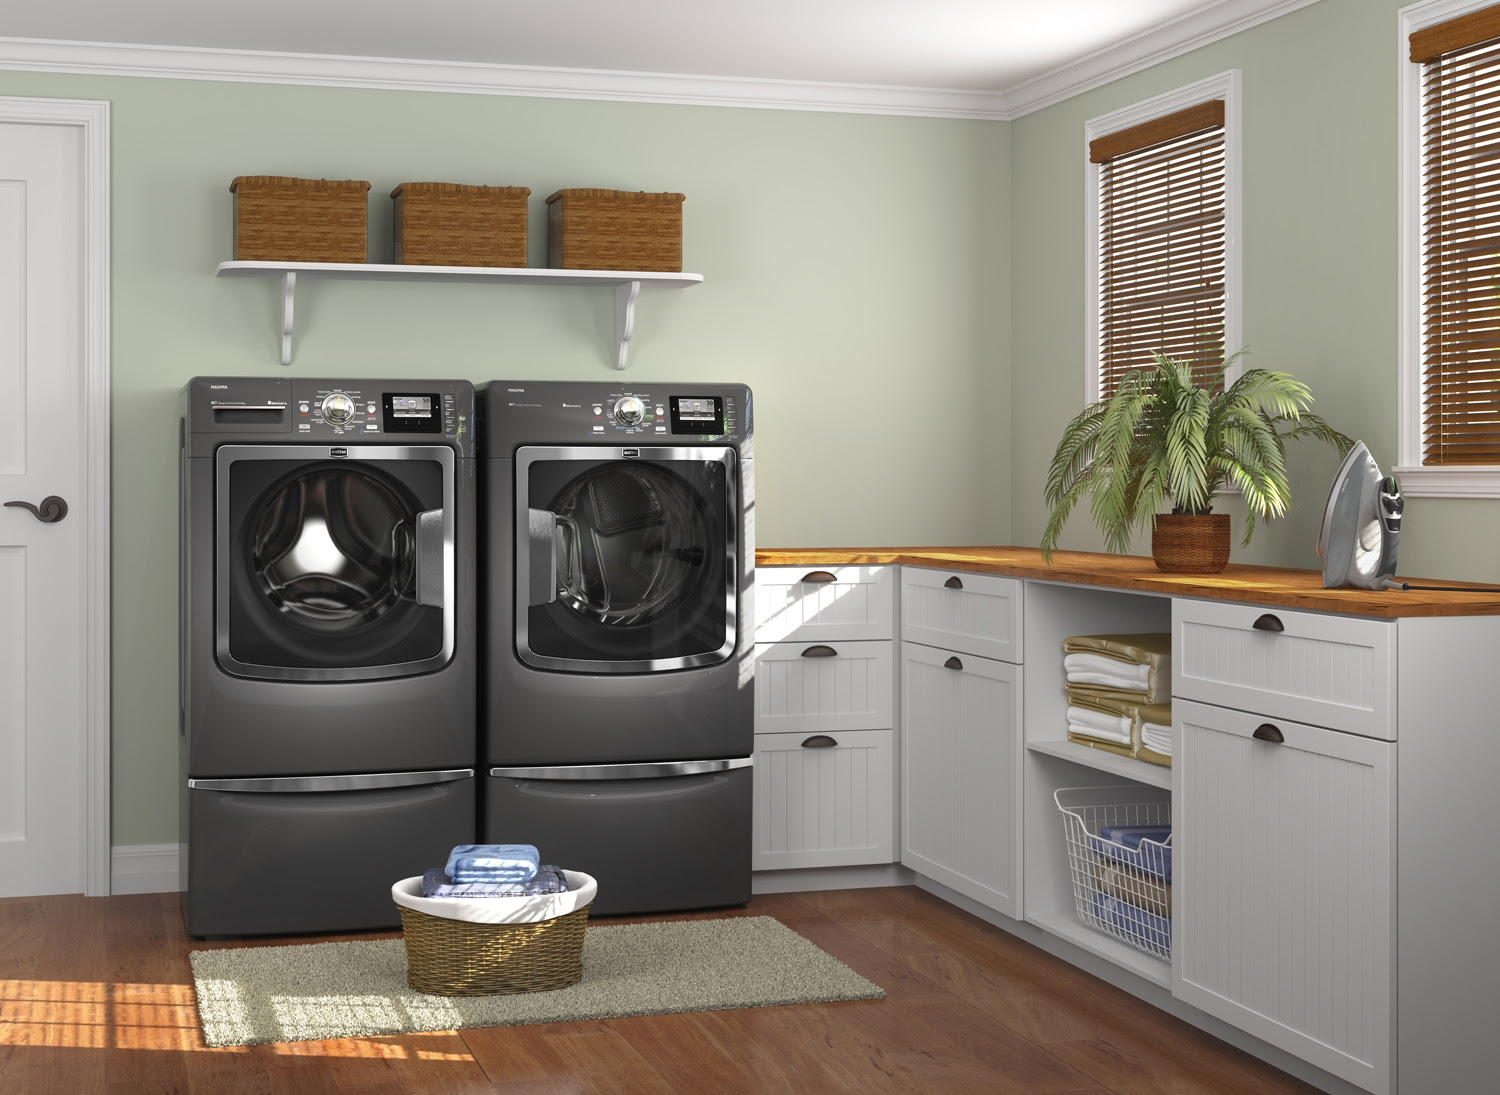 15 Tips to Creating a Laundry Room thats both Charming